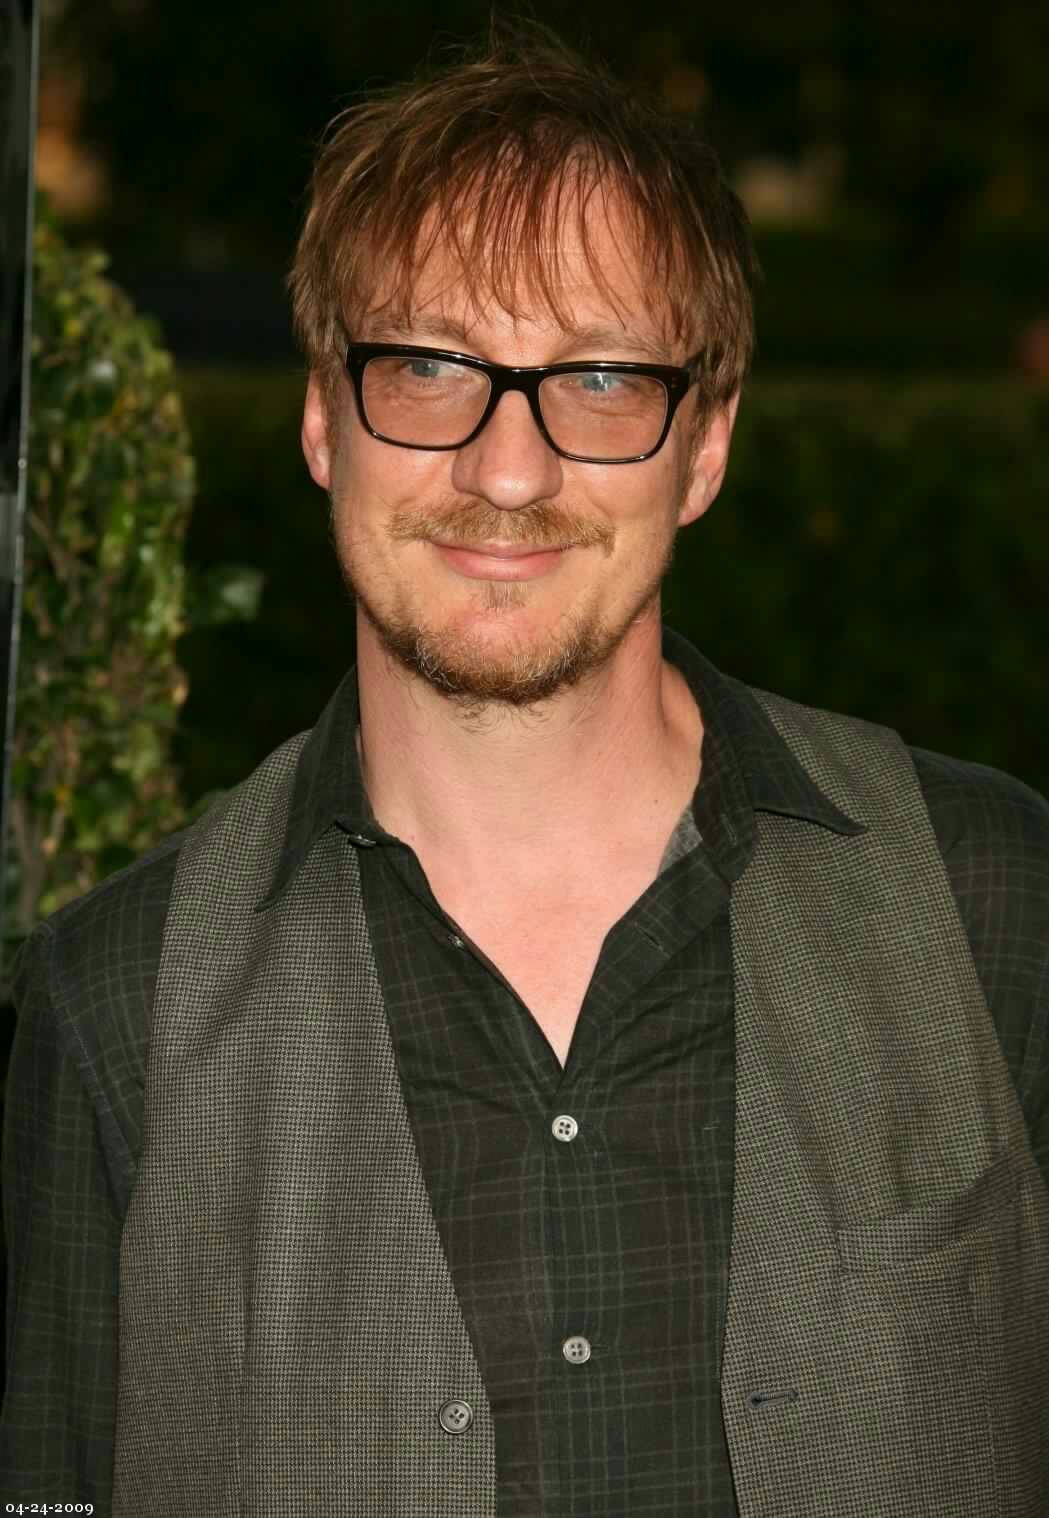 Happy birthday to David Thewlis! The actor who perfectly potrayed Remus Lupin.